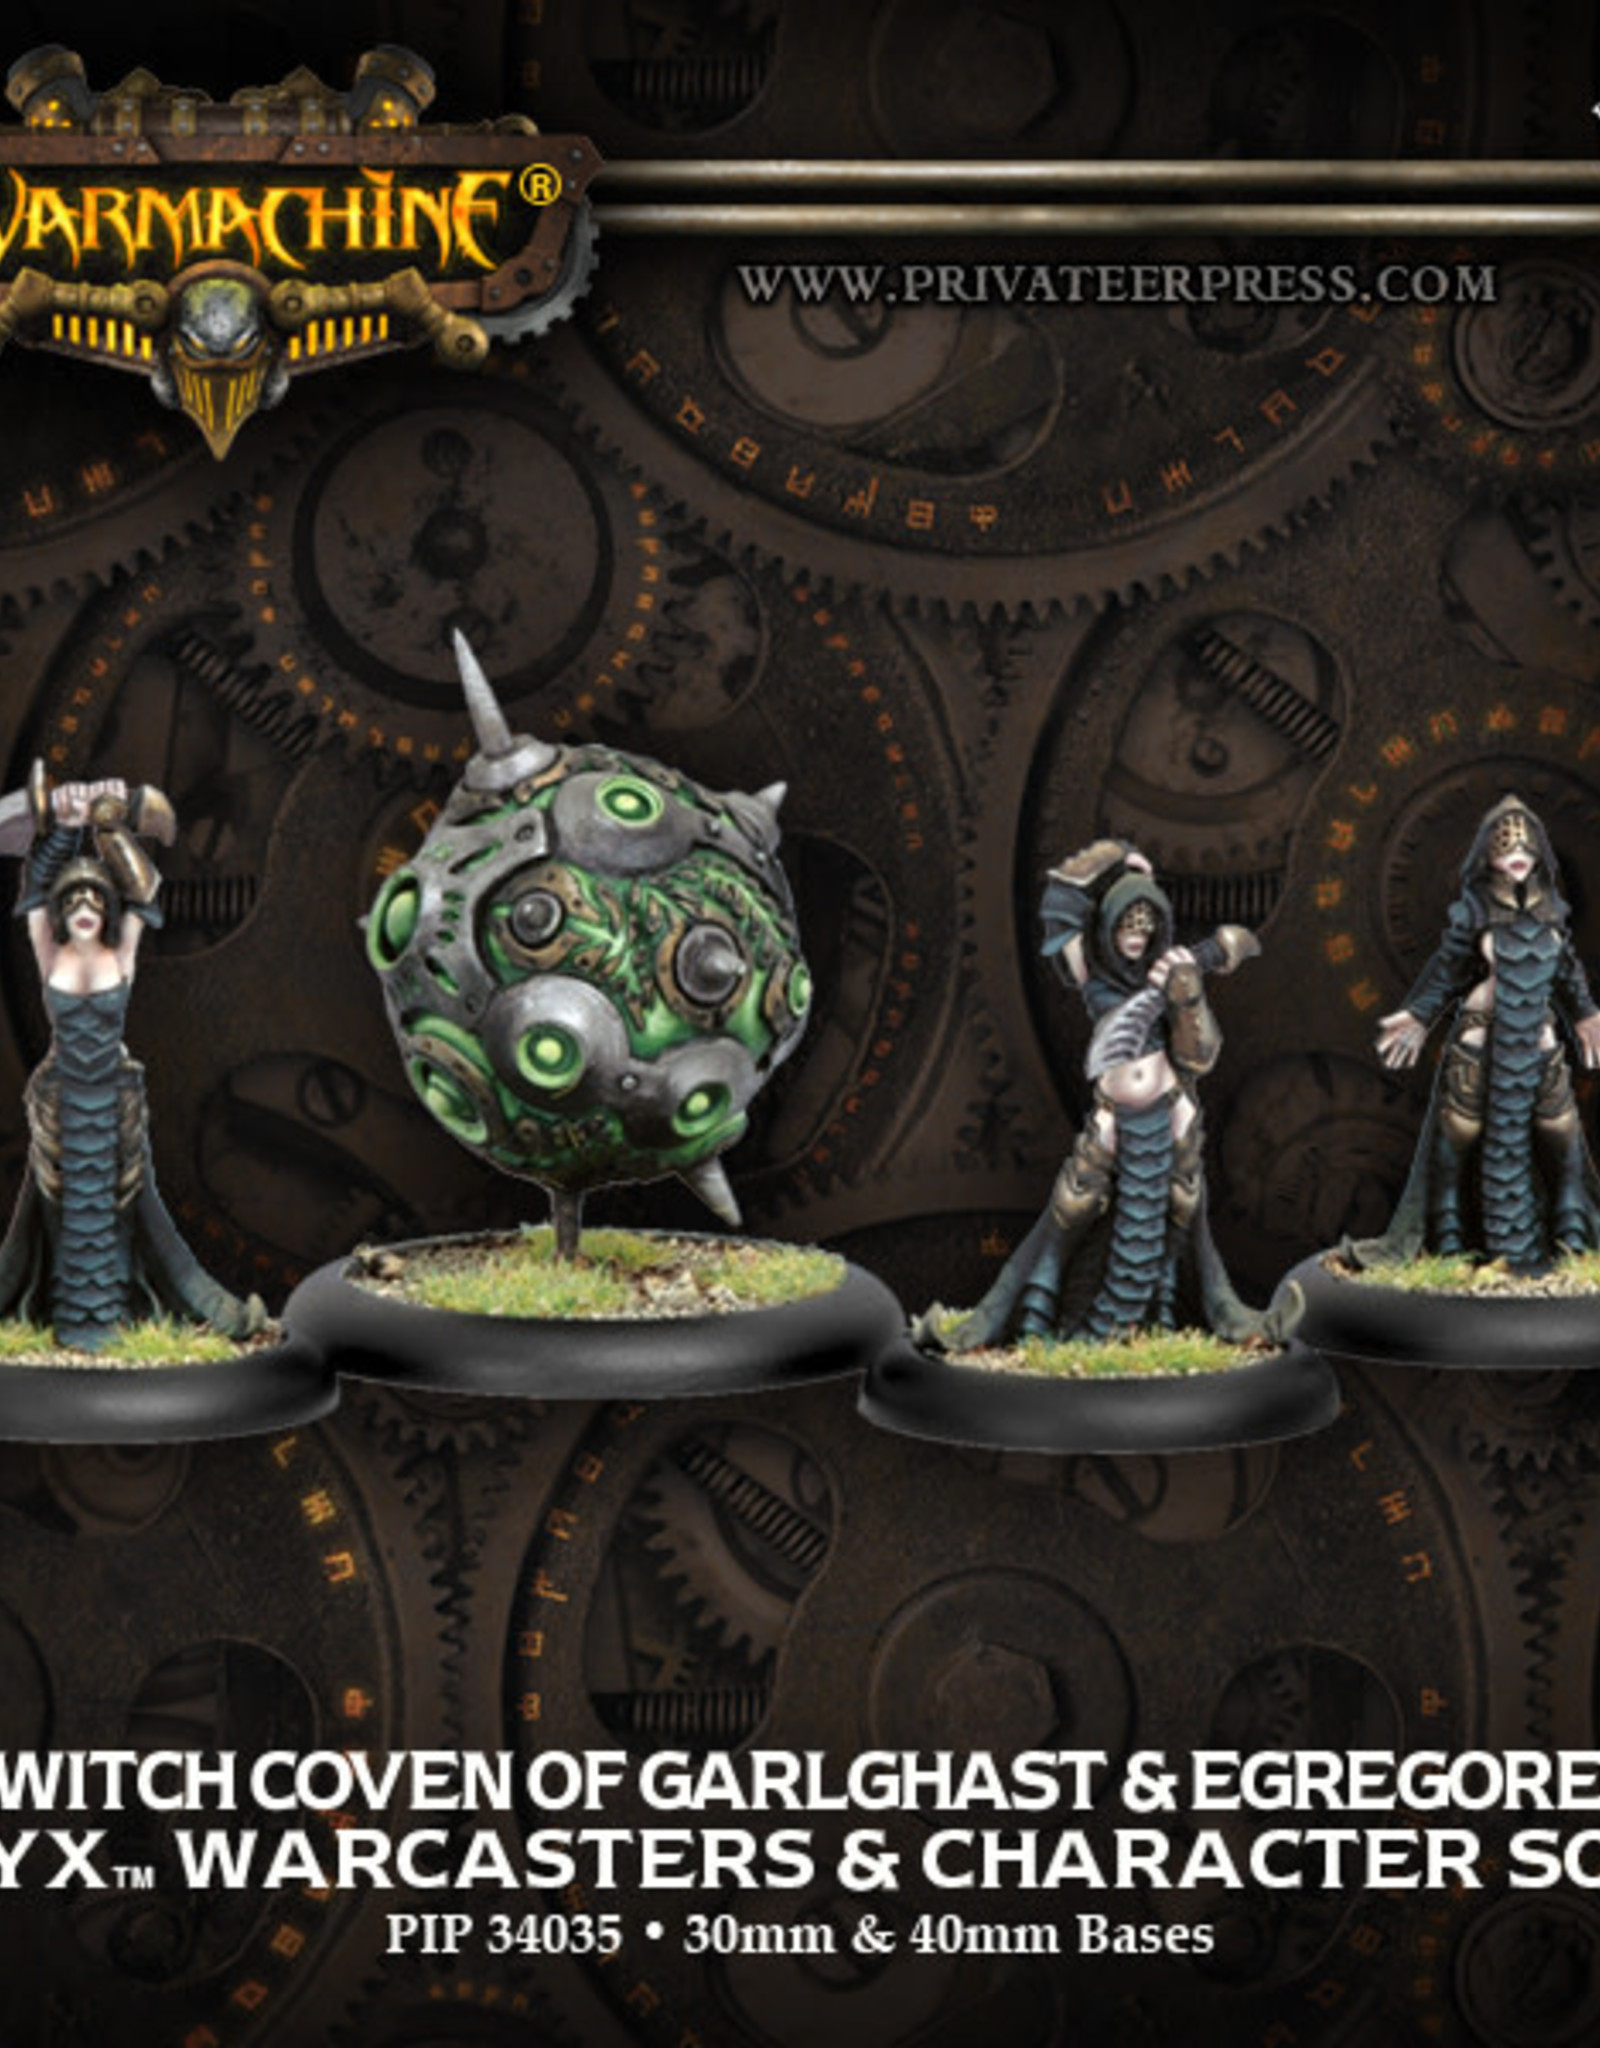 Warmachine Cryx - Witch Coven